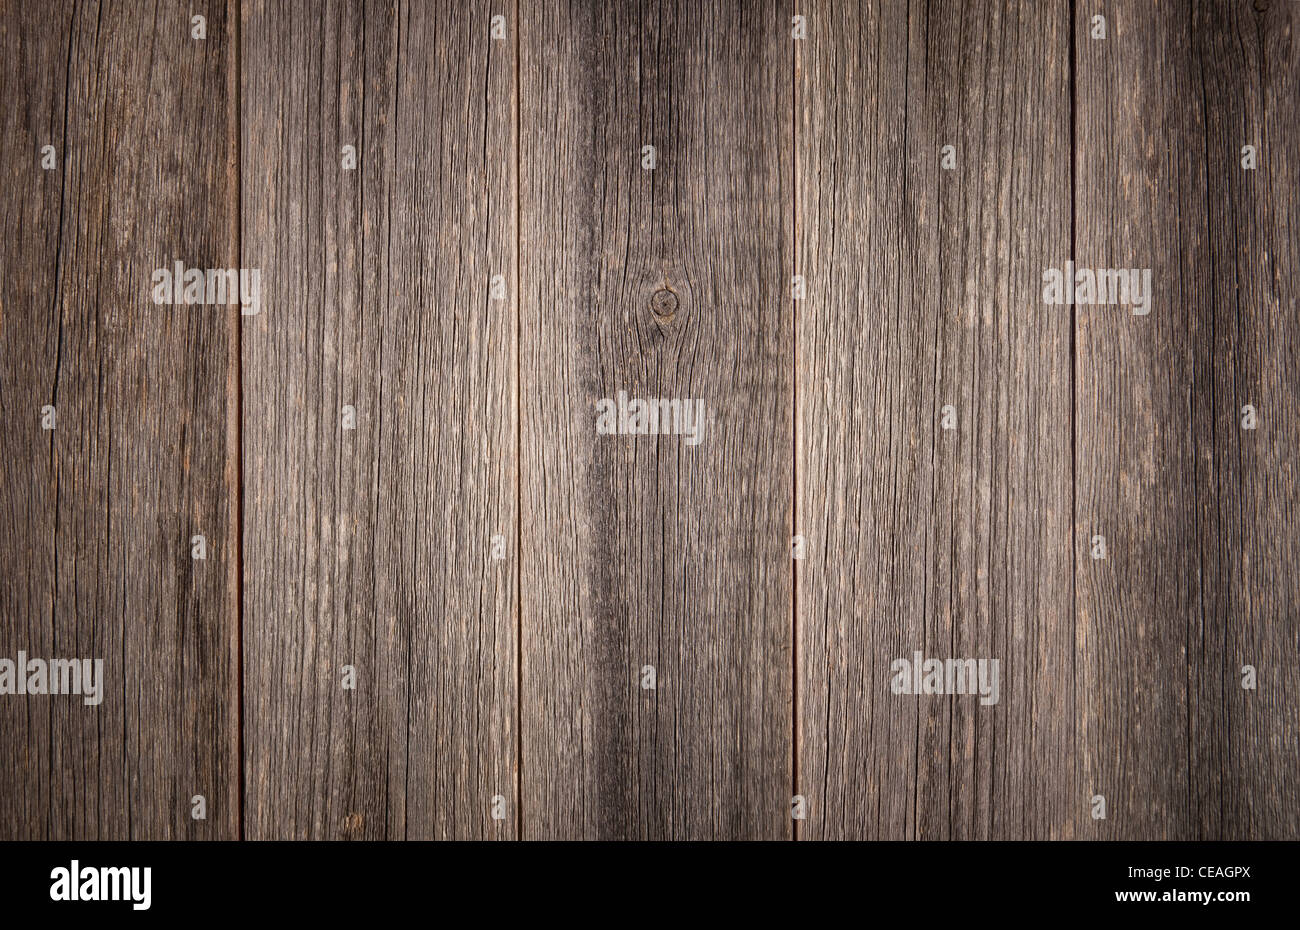 Weathered grey background detail of vertical barn wood boards. - Stock Image